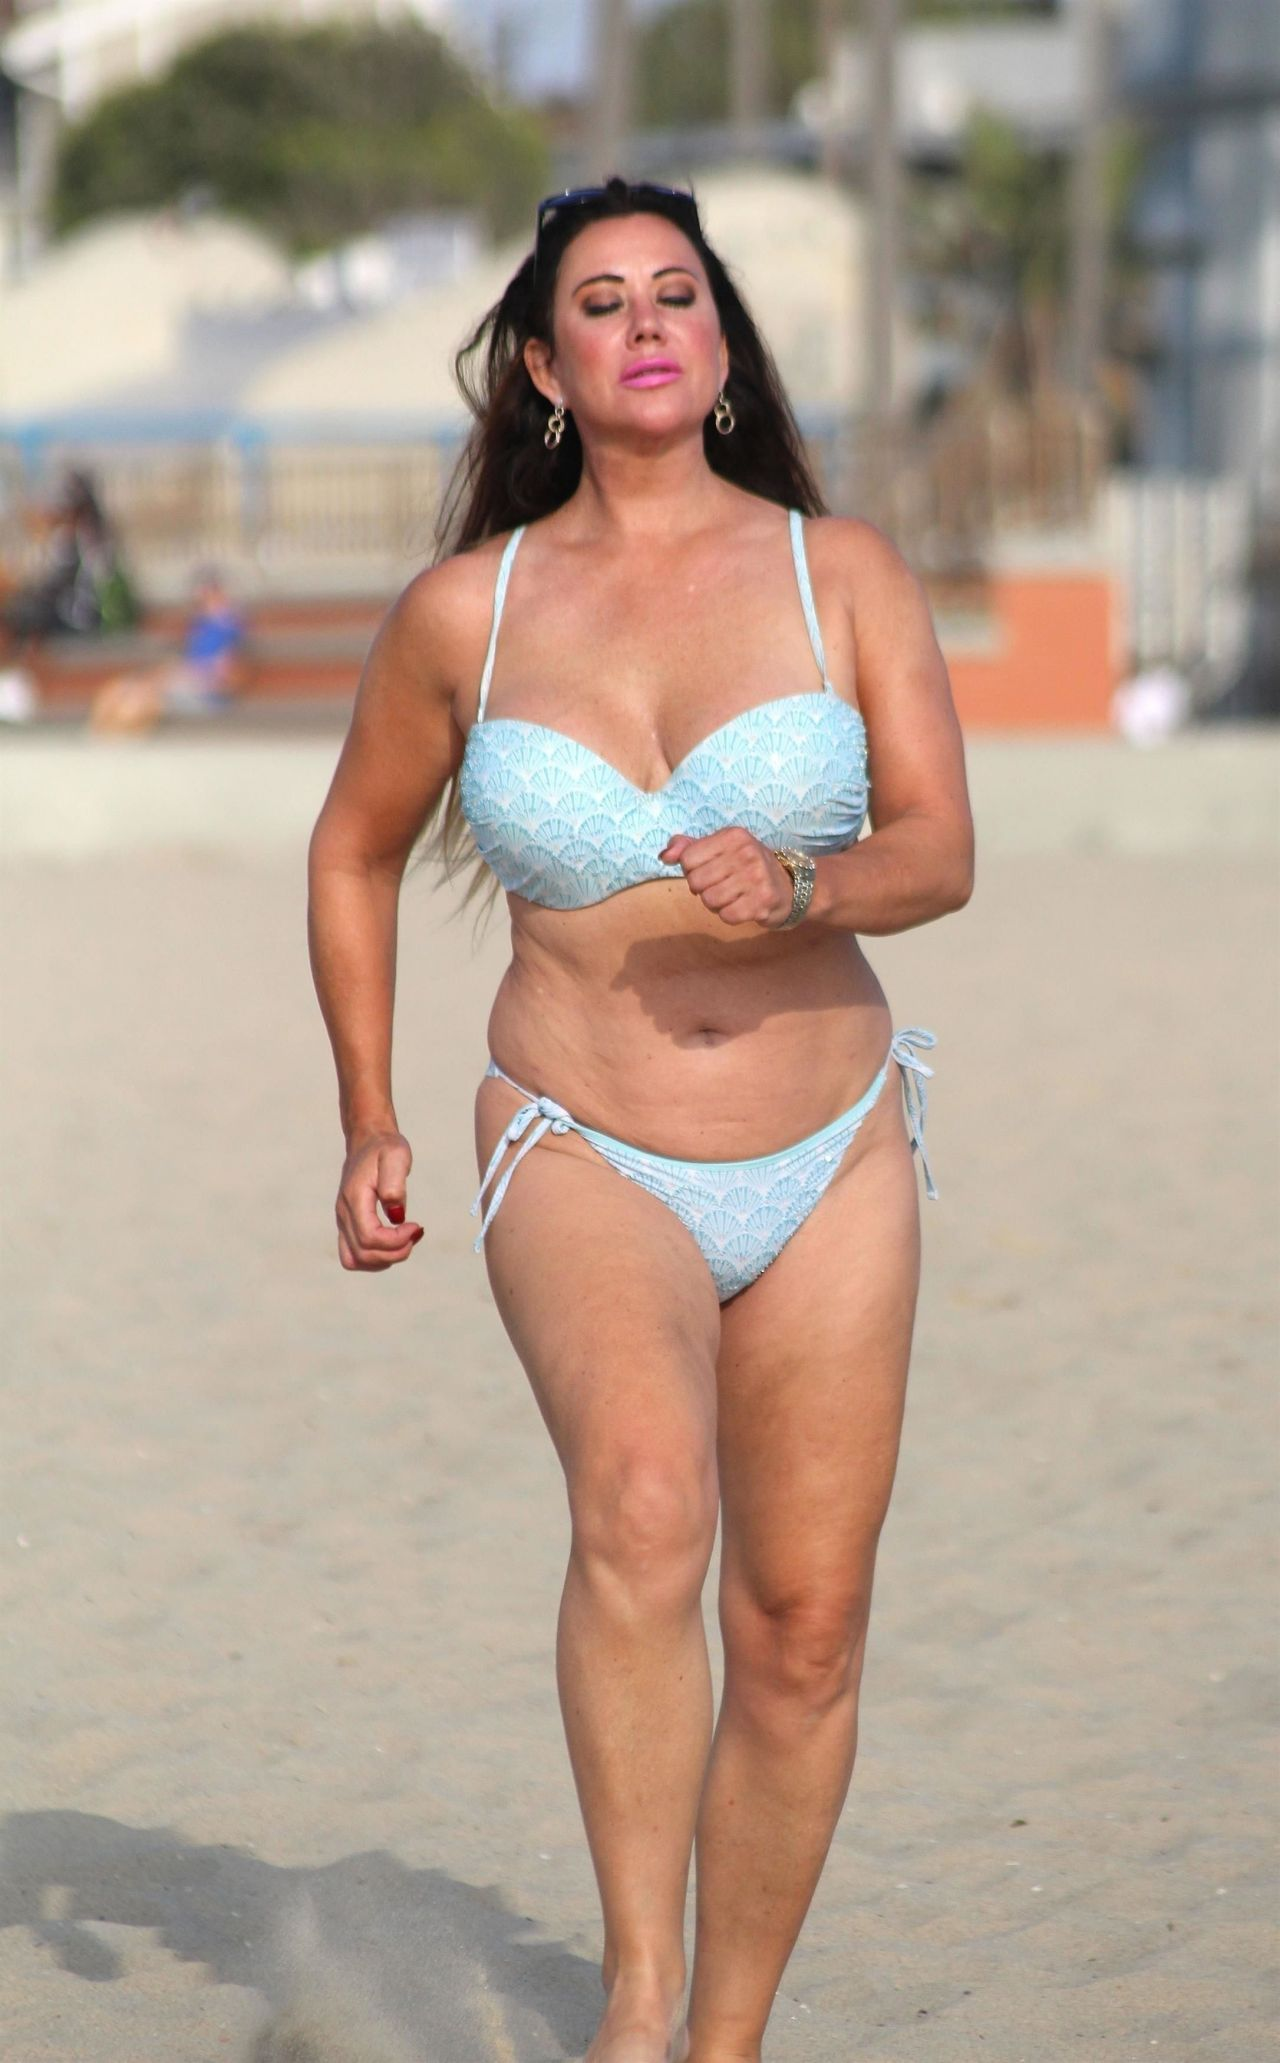 The hottest lisa appleton photos from the beach - 2019 year